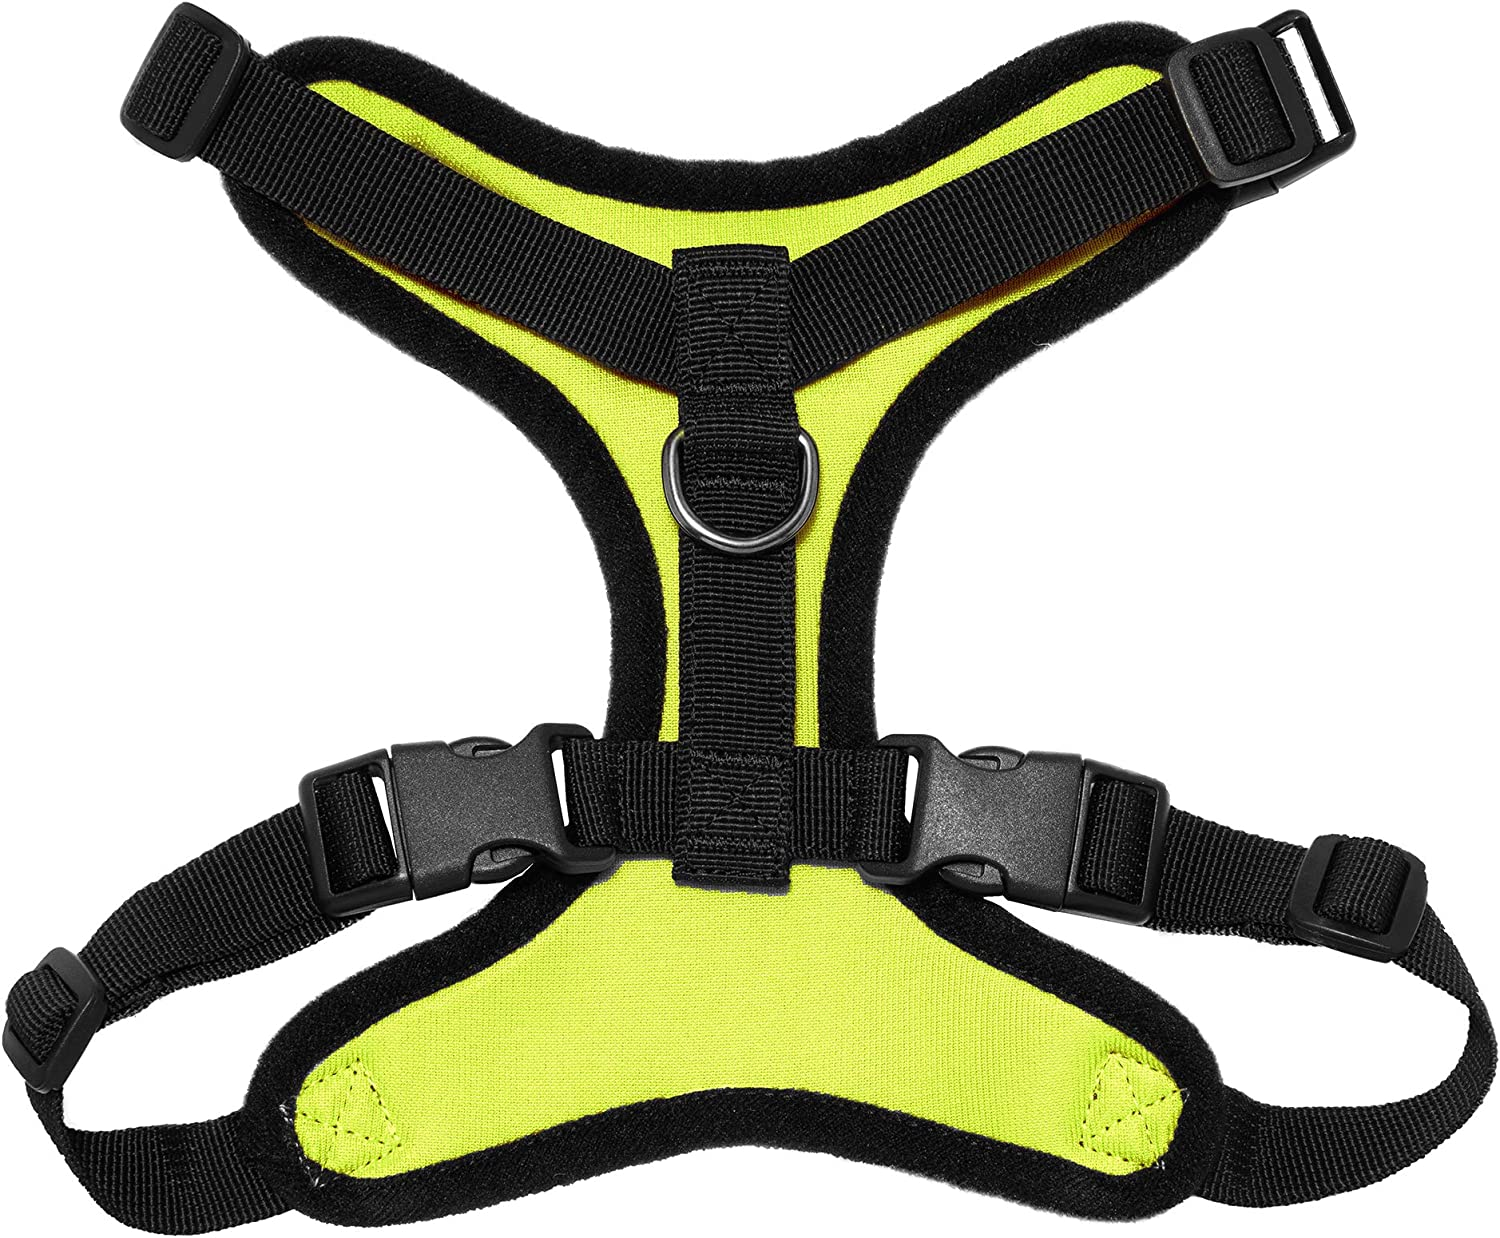 XS Lime Green Base Chest: 11-16 * Fit Cats Adjustable Step in Harness for Cats and Dogs by Best Pet Supplies Voyager Step-in Lock Pet Harness All Weather Mesh